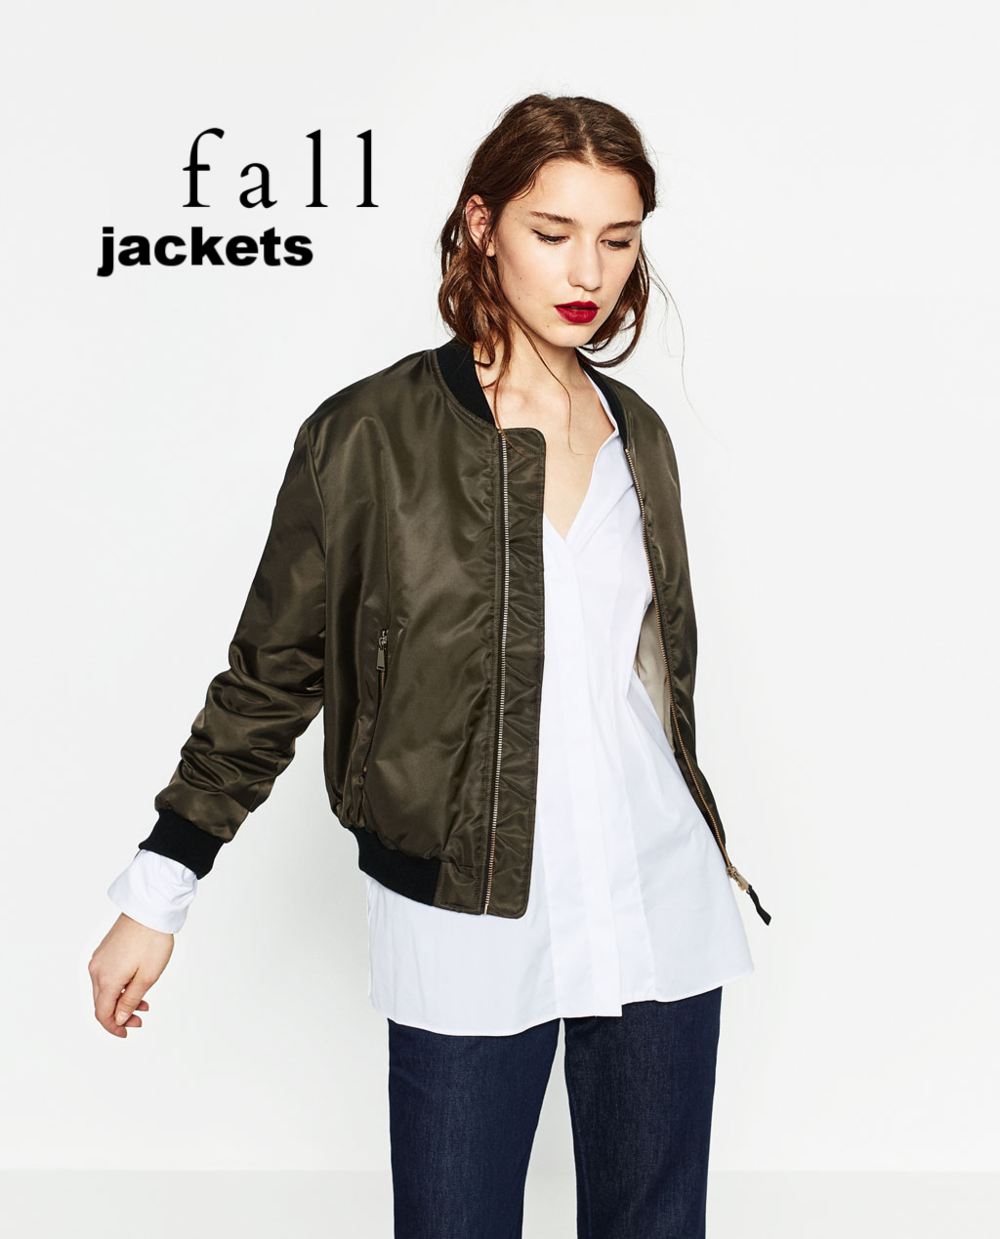 In the market for: fall jackets - The Pastiche